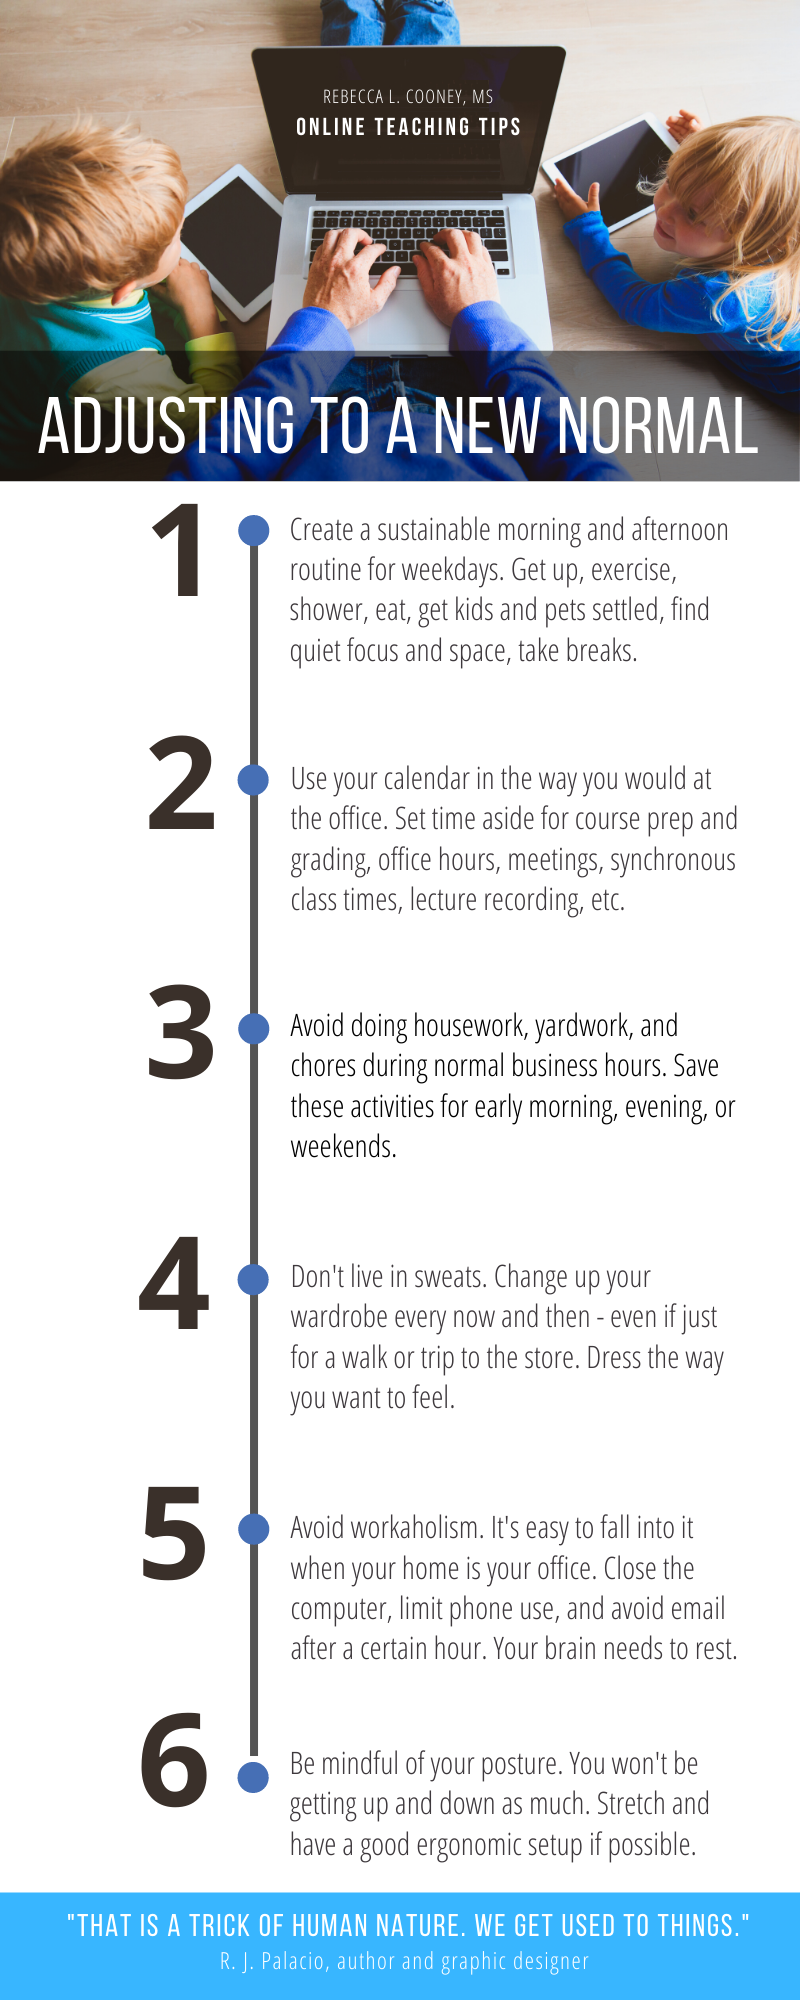 Accepting A New Normal 6 Tips For Teaching From Home Infographic